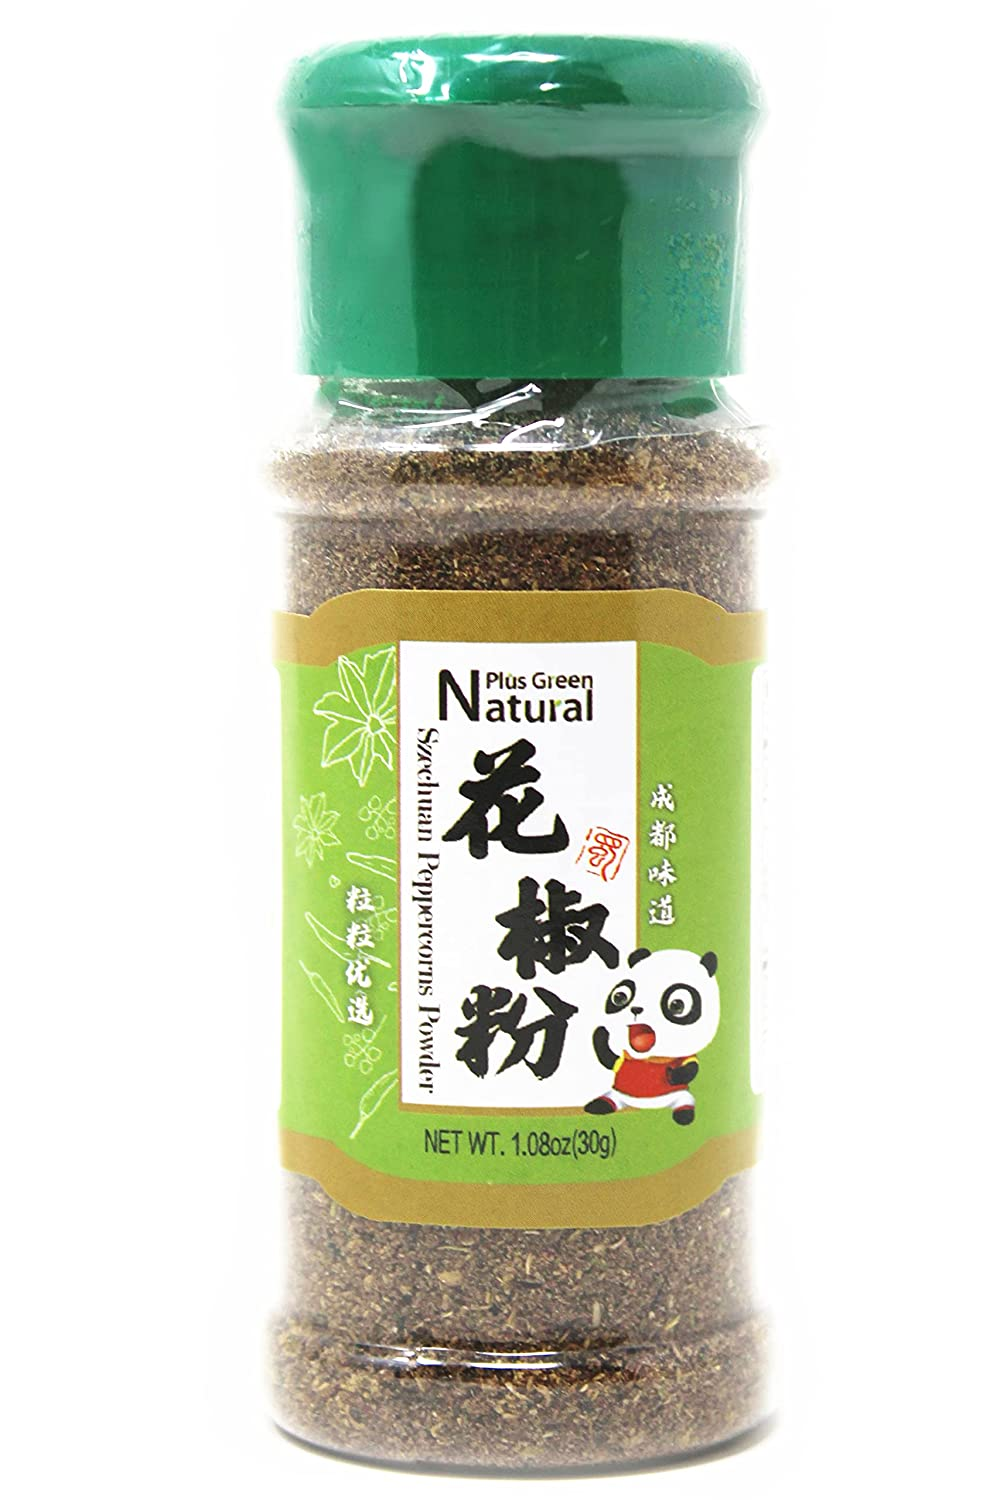 Premium Sichuan Red Peppercorn Powder 1.05 oz, A Mouth-numbing Spice, Ground Red Szechuan Peppers in Dispenser with Pour Holes for Kung Pao Chicken, Mapo Tofu, and Chinese Cuisine